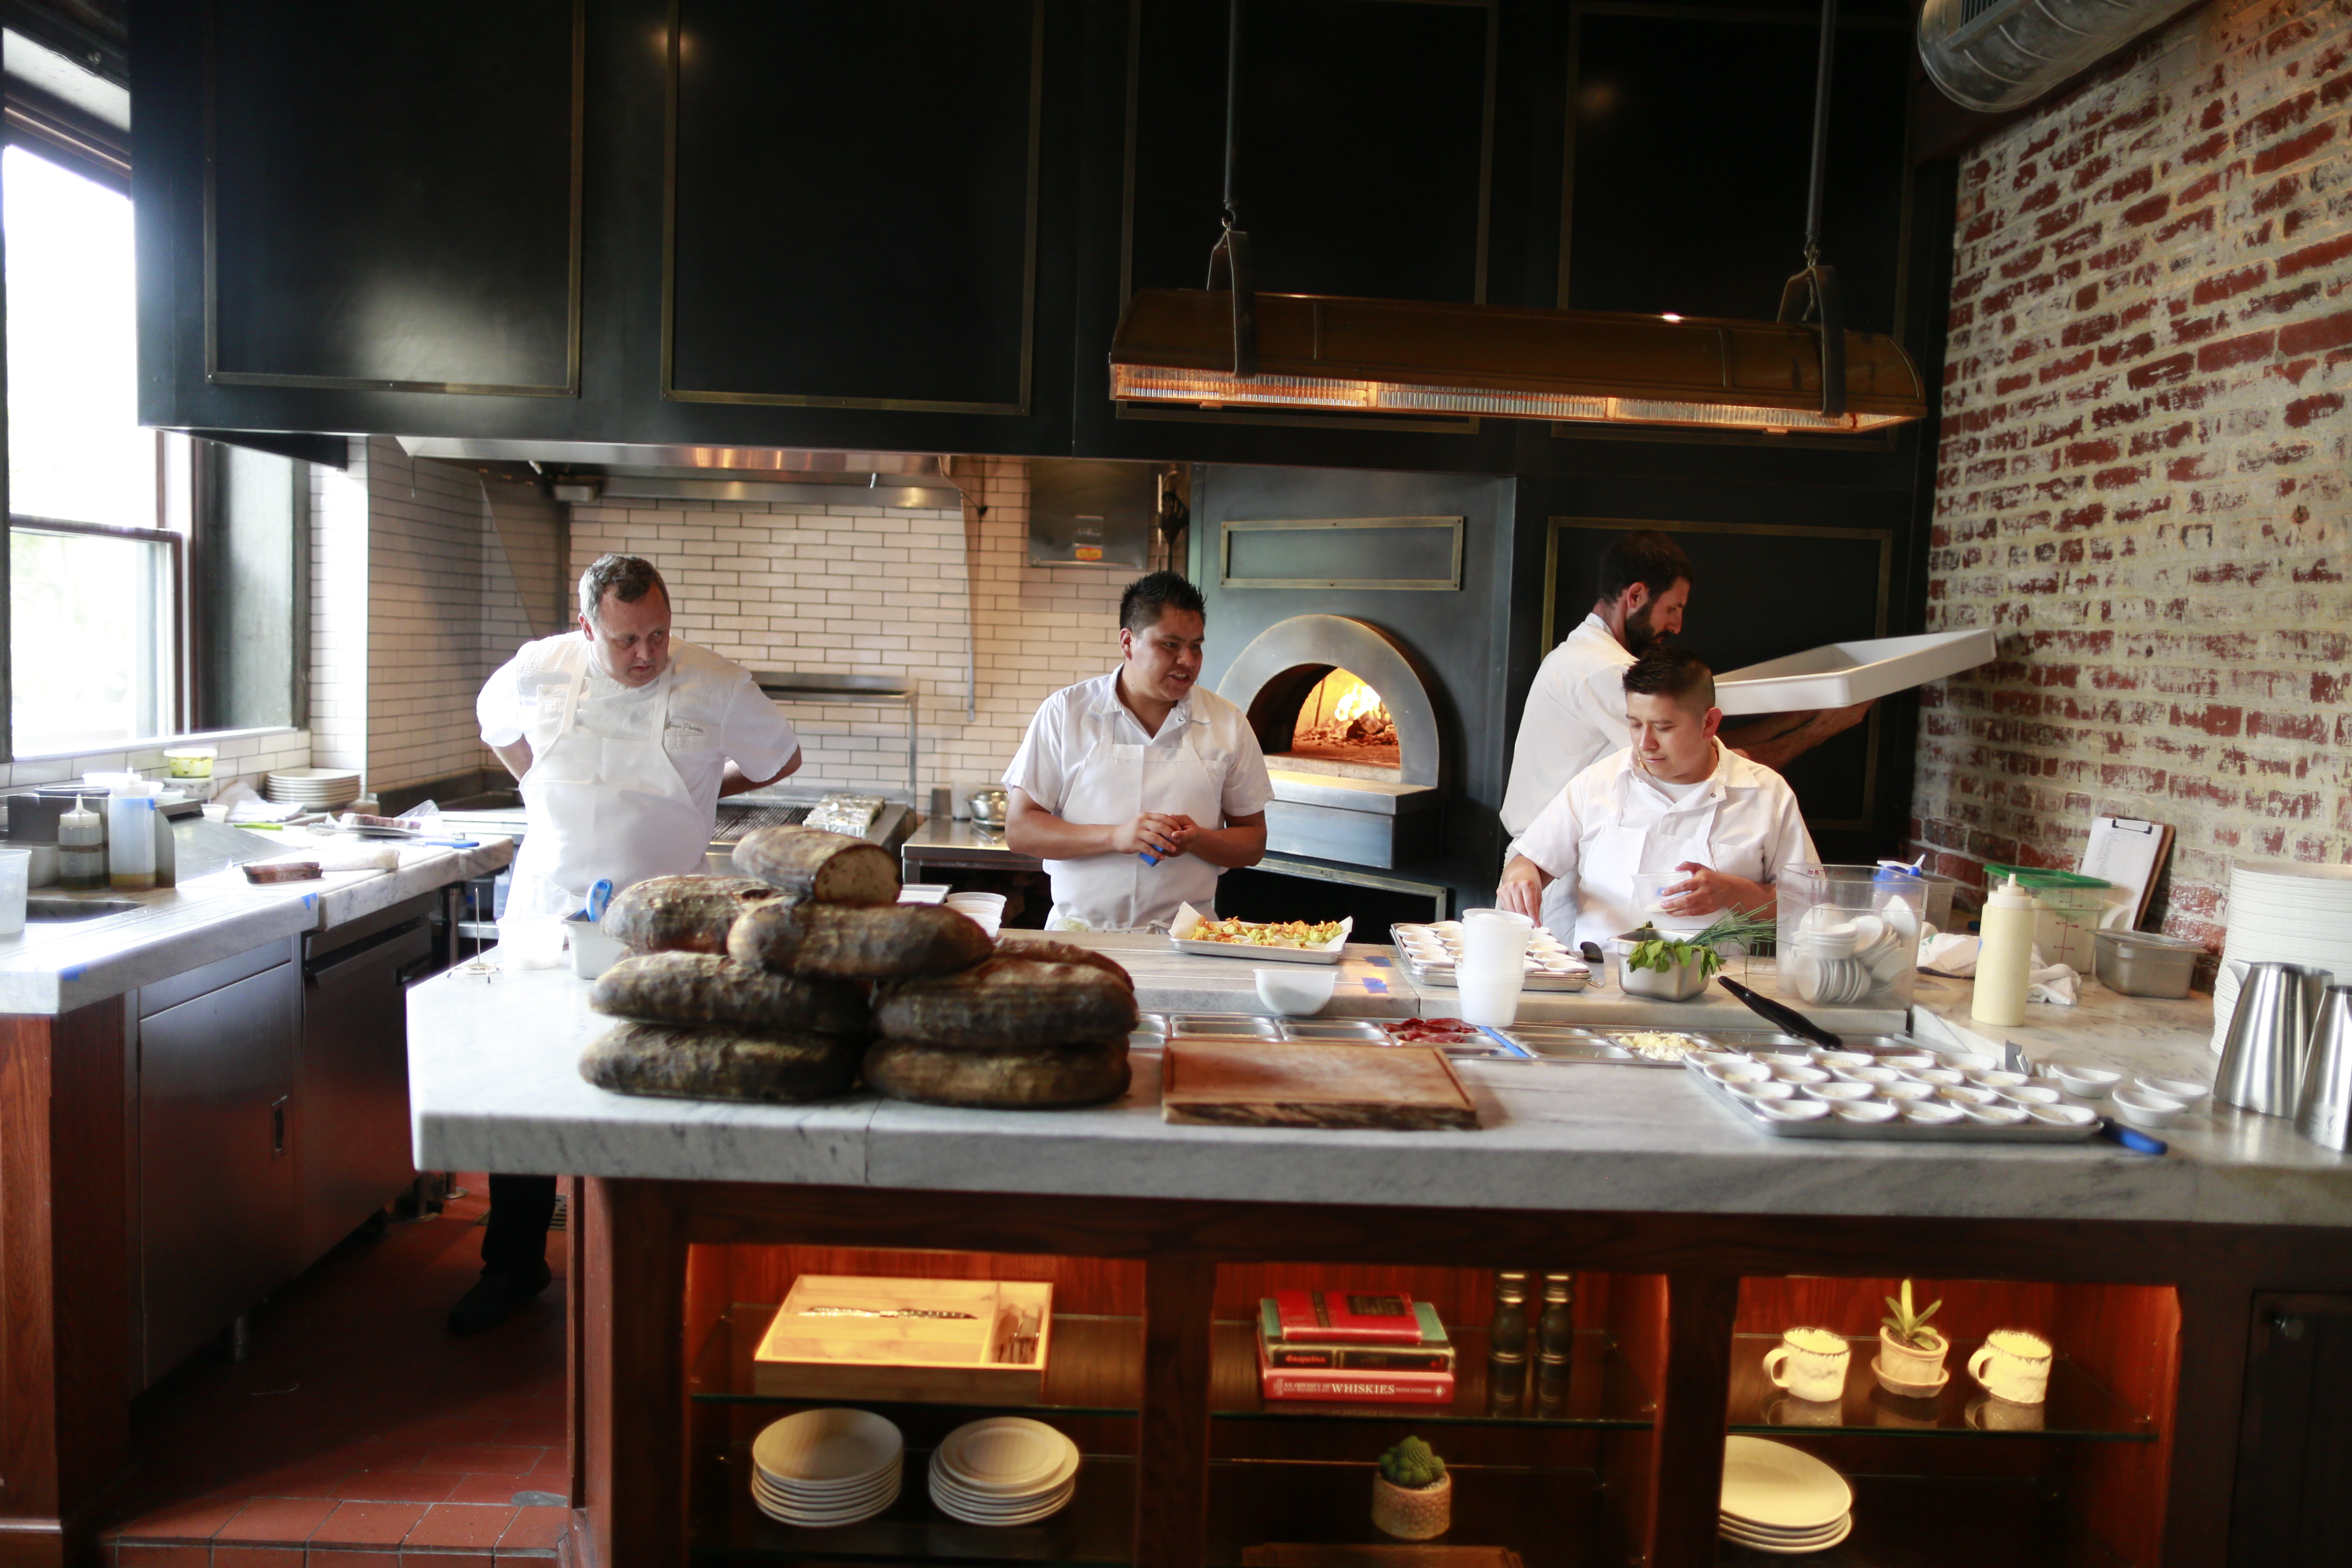 The kitchen at Wm. Mulherin´s Sons.